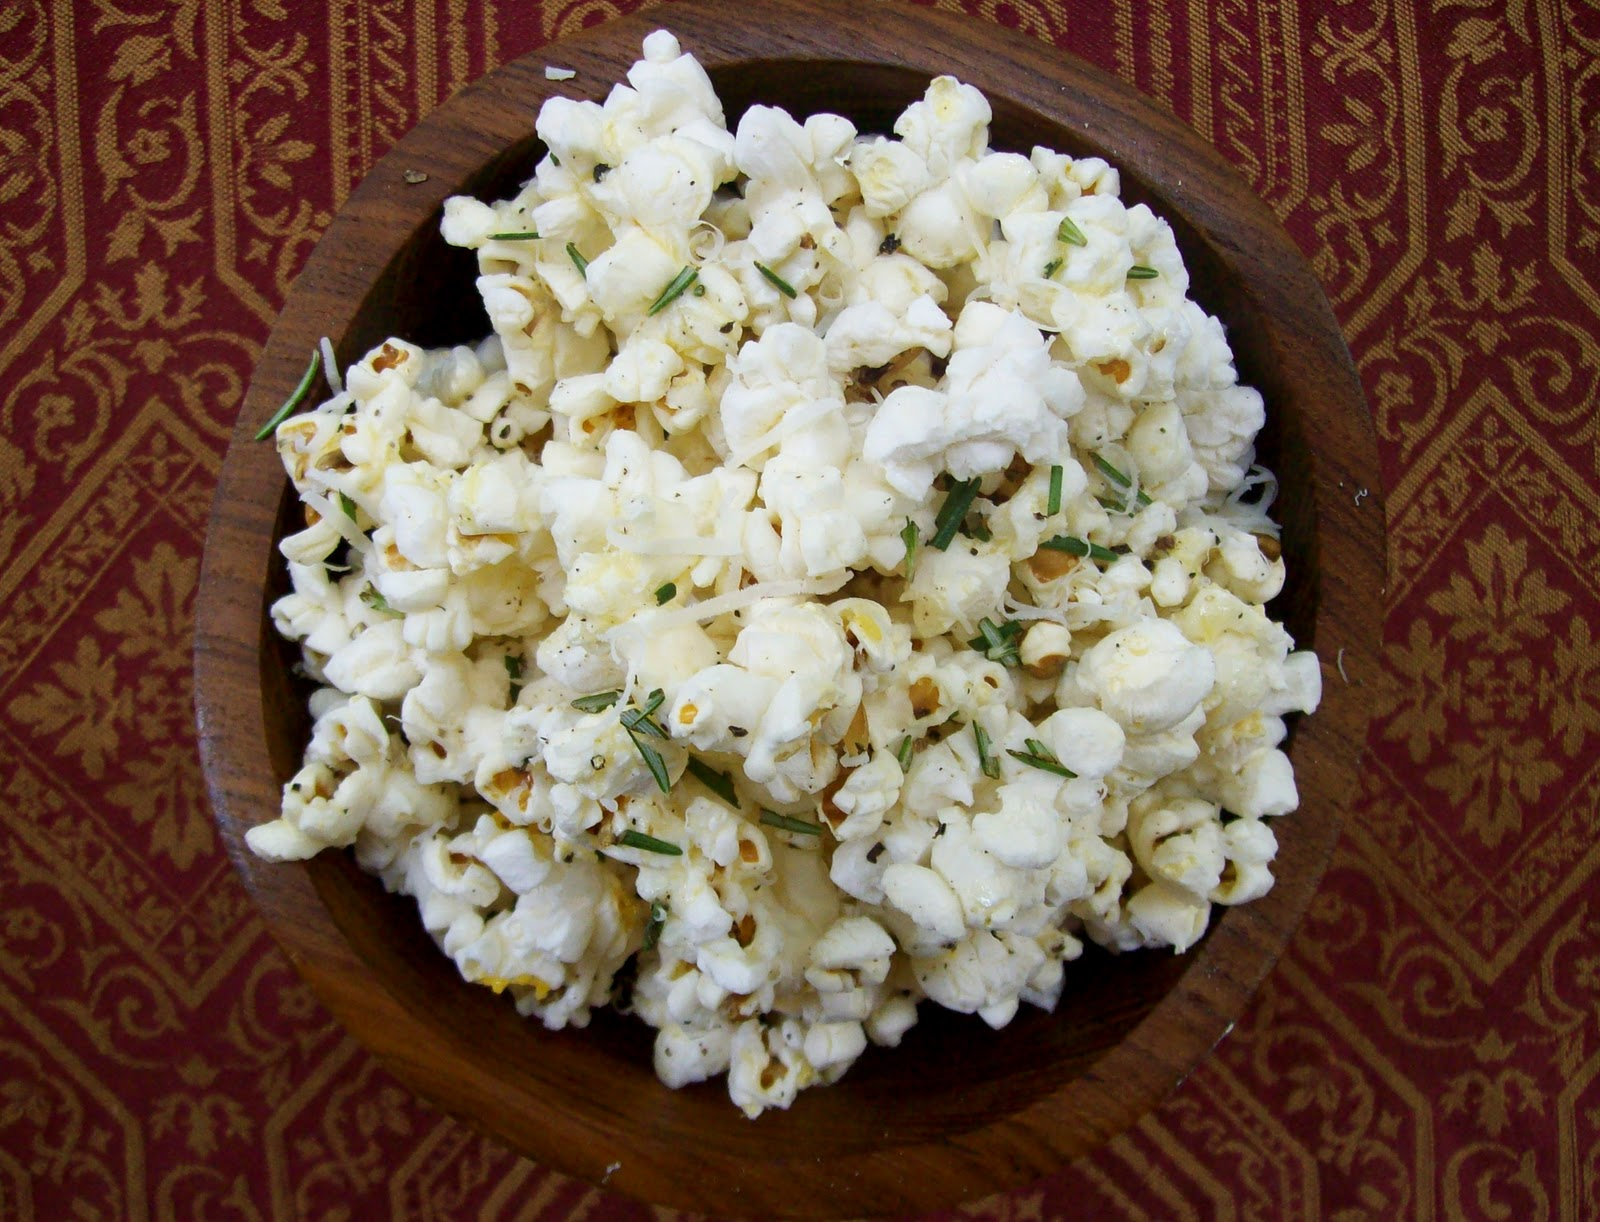 NudeFood: Truffled Popcorn with Rosemary and Parmesan